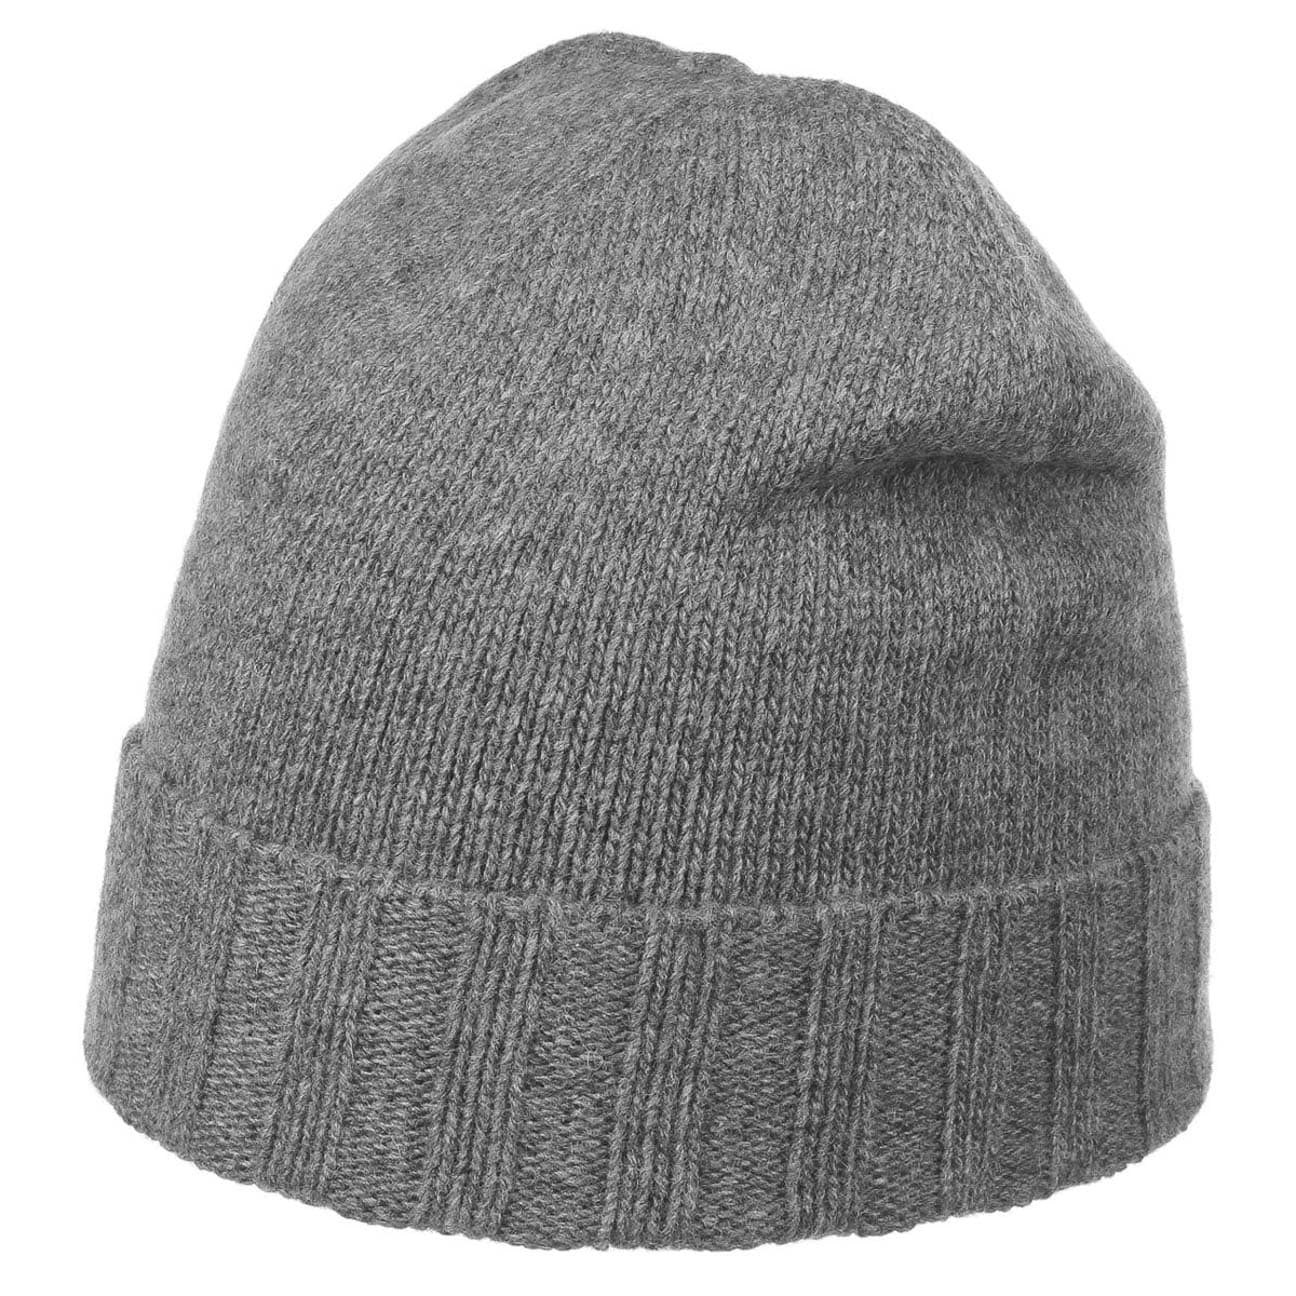 ... Cashmere Wool Blend Beanie by Lierys - grey 1 ... 3d1c5285d83